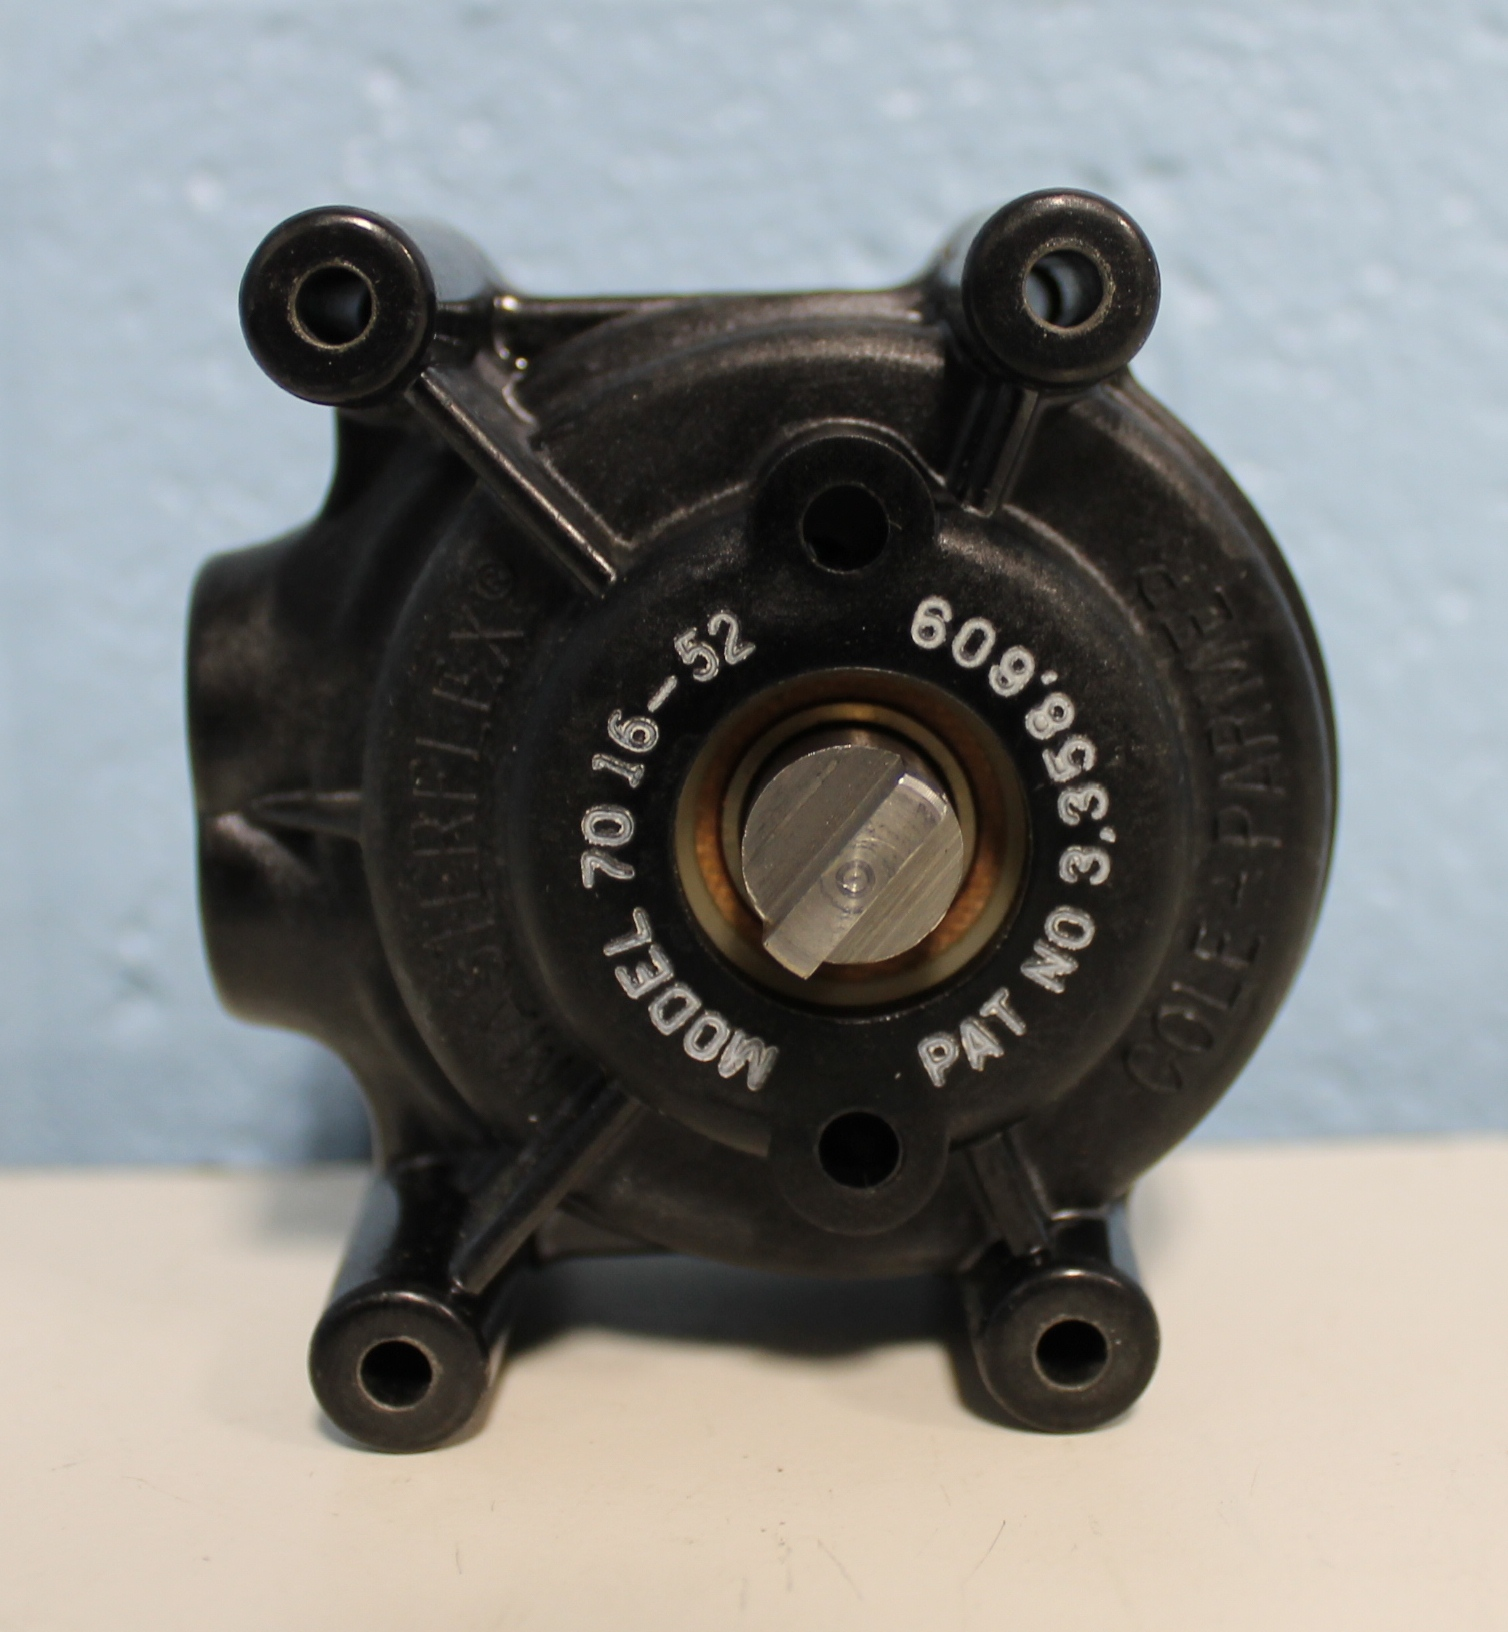 Cole-Parmer Masterflex Standard Pump Head for L/S 16 Tubing, PPS Housing /SS Rotor Image